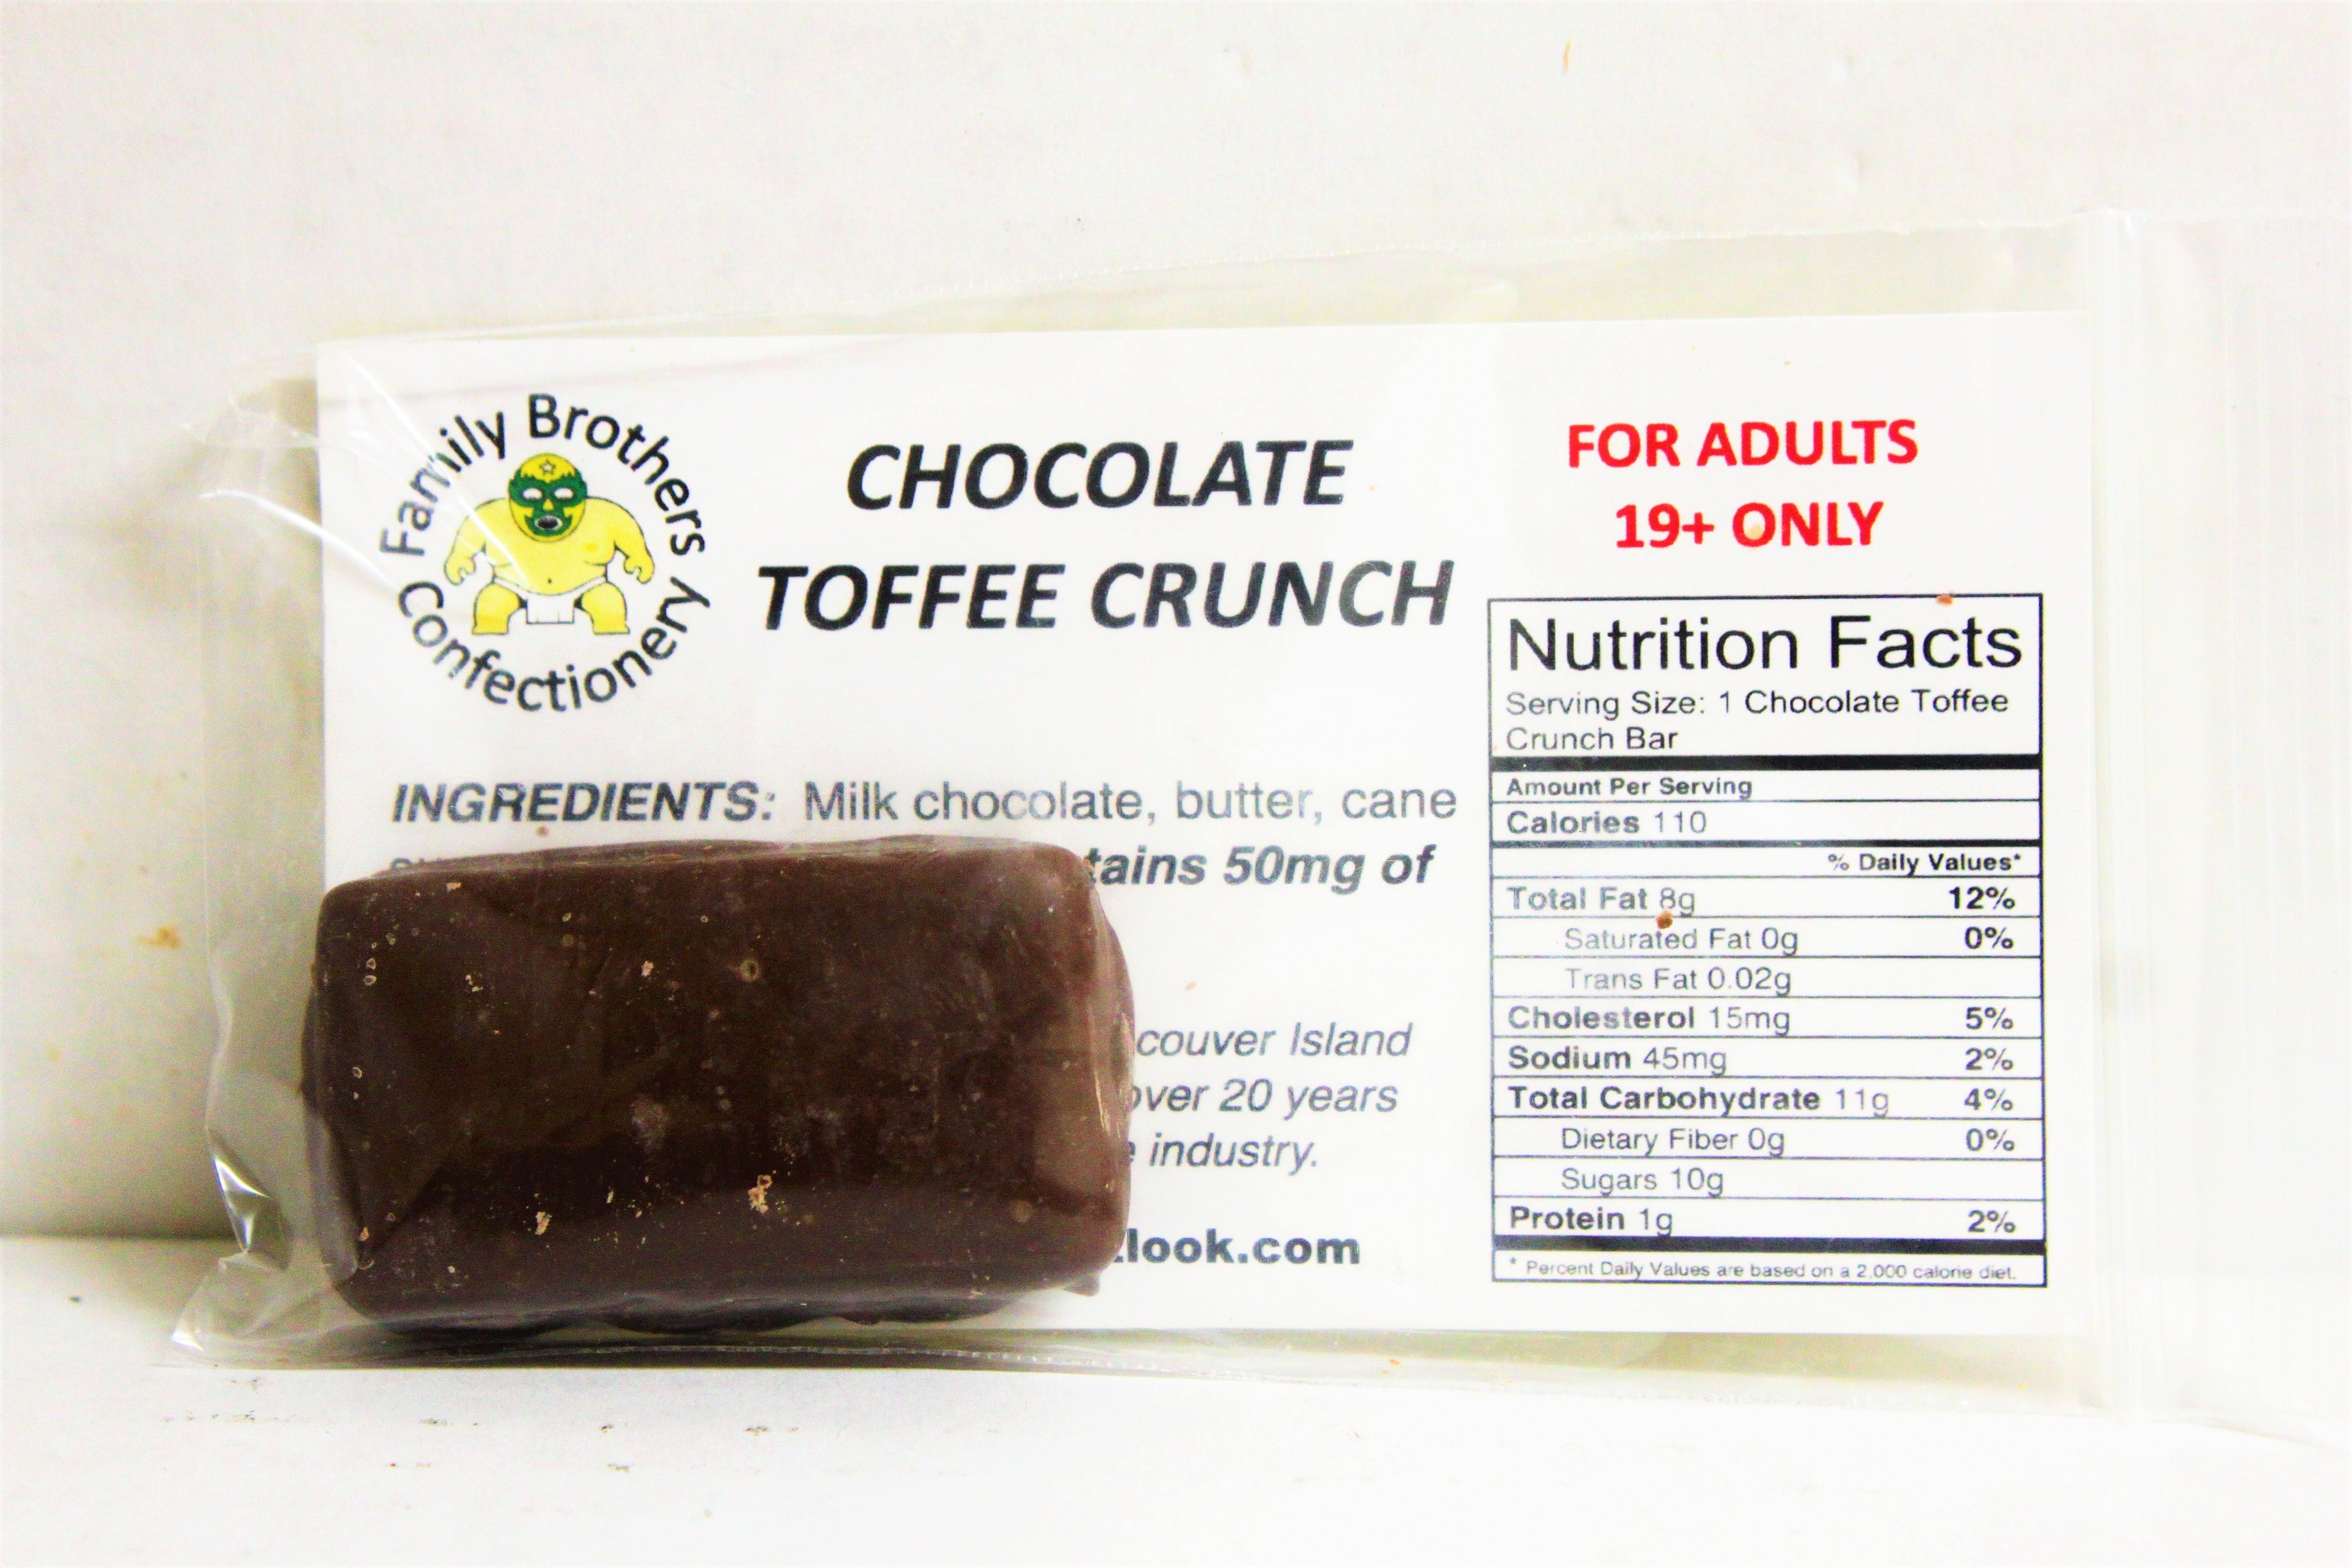 edible-chocolate-toffee-crunch